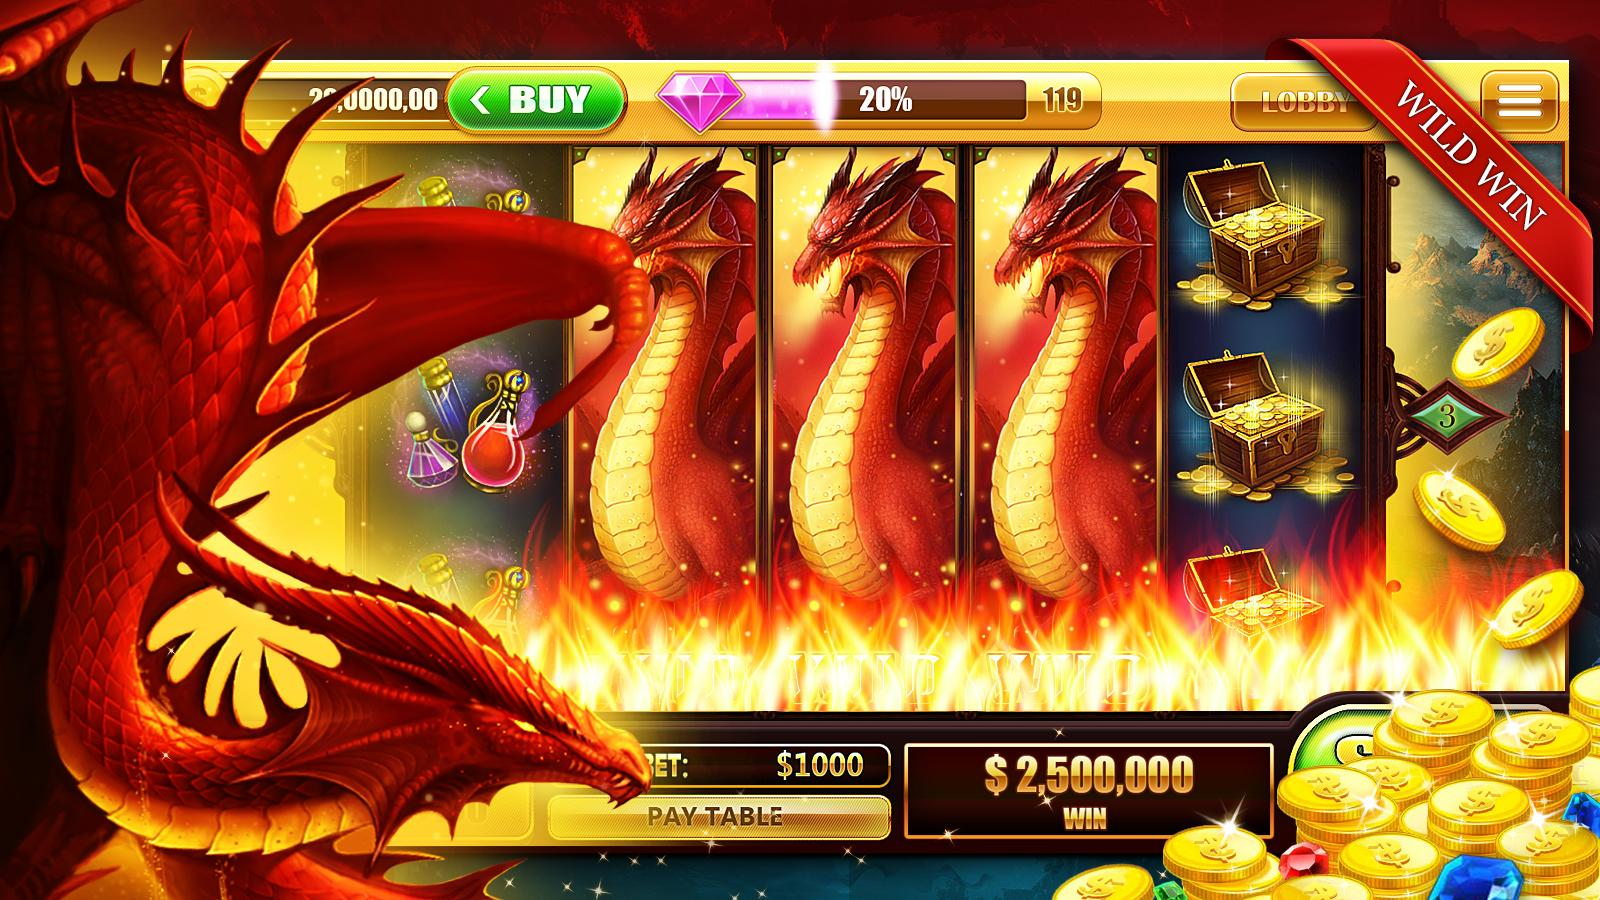 Big Joker Slot - Win Big Playing Online Casino Games